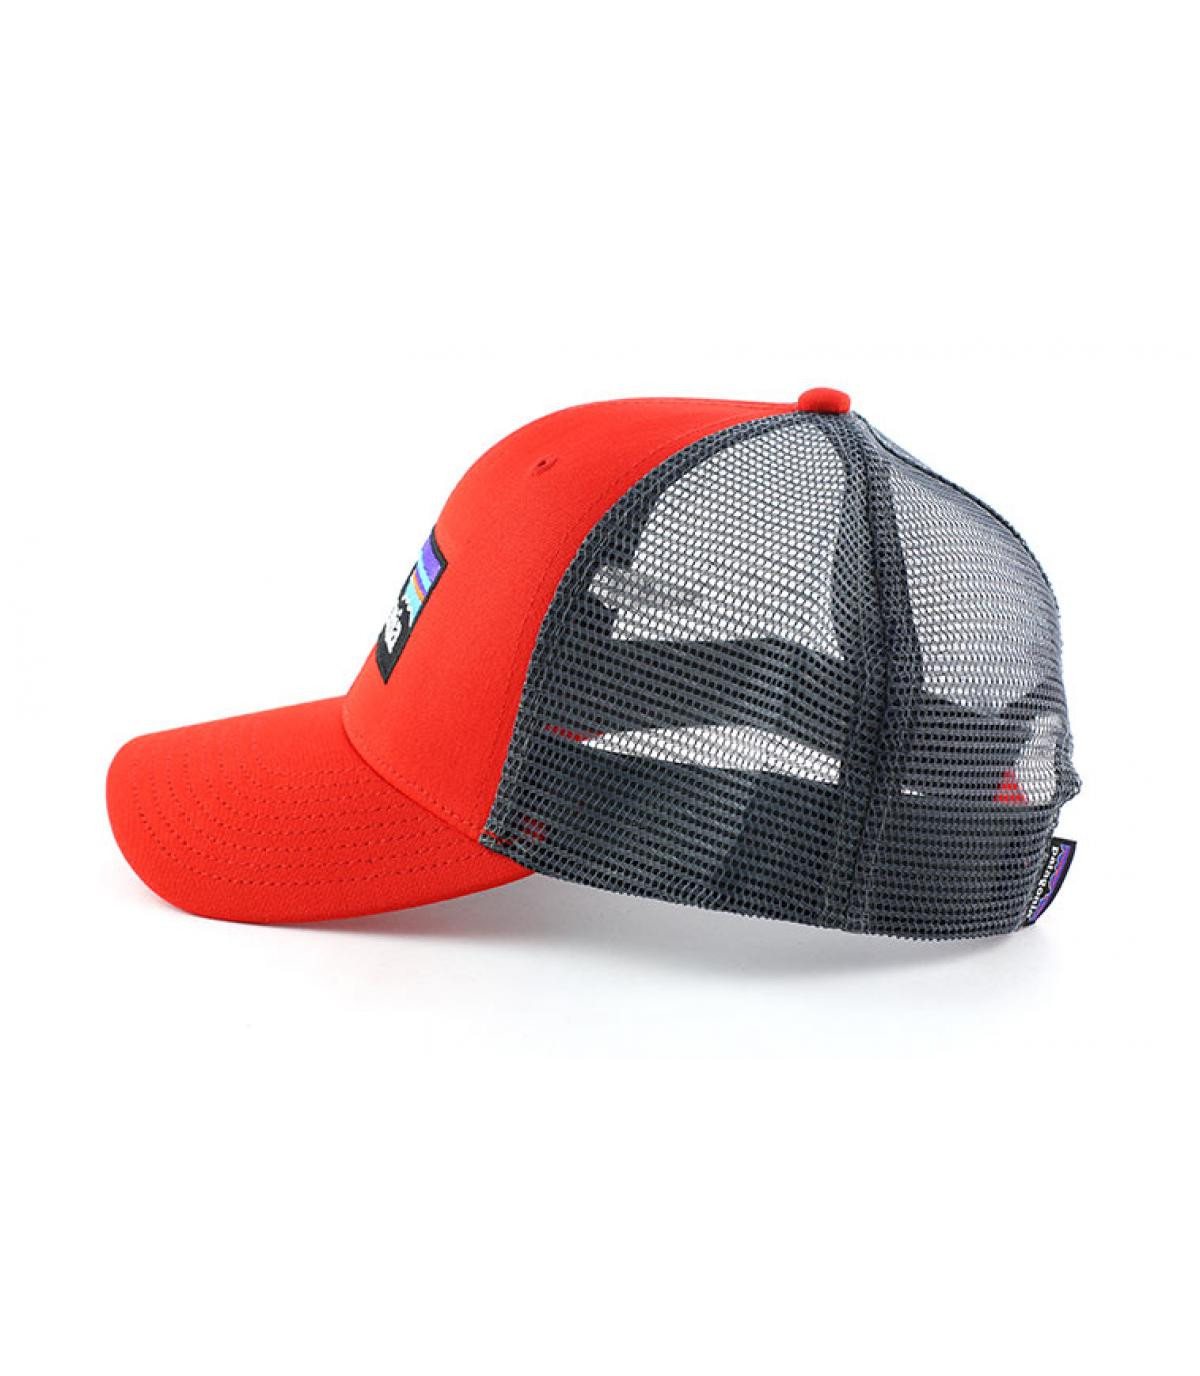 Détails P6 logo trucker hat french red - image 4